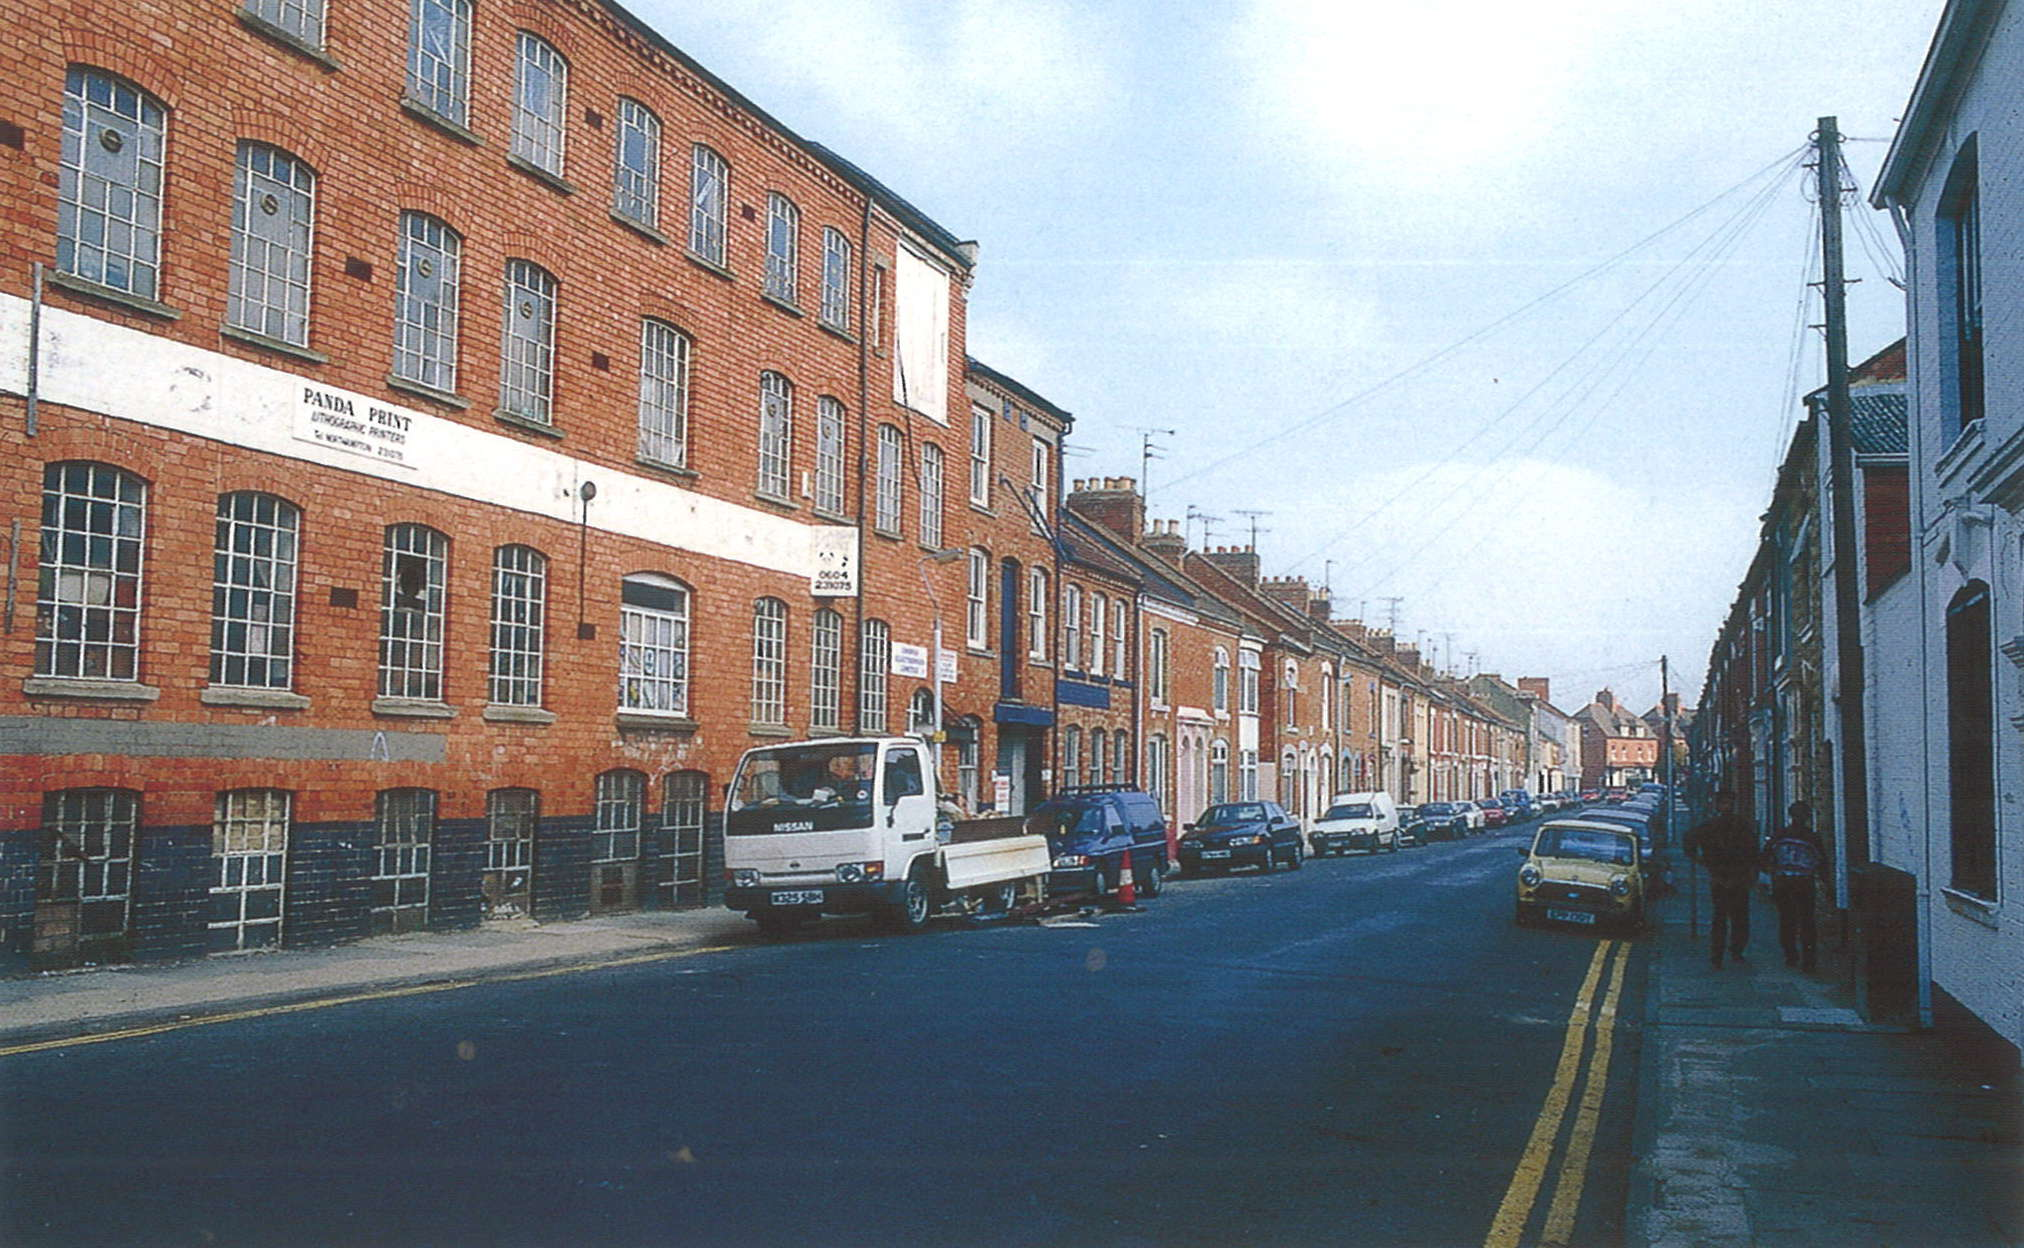 A photograph of a city street. Red-brick buildings line the left hand side, most notably a large four-story industrial building. Most of the other buildings appear to be houses.